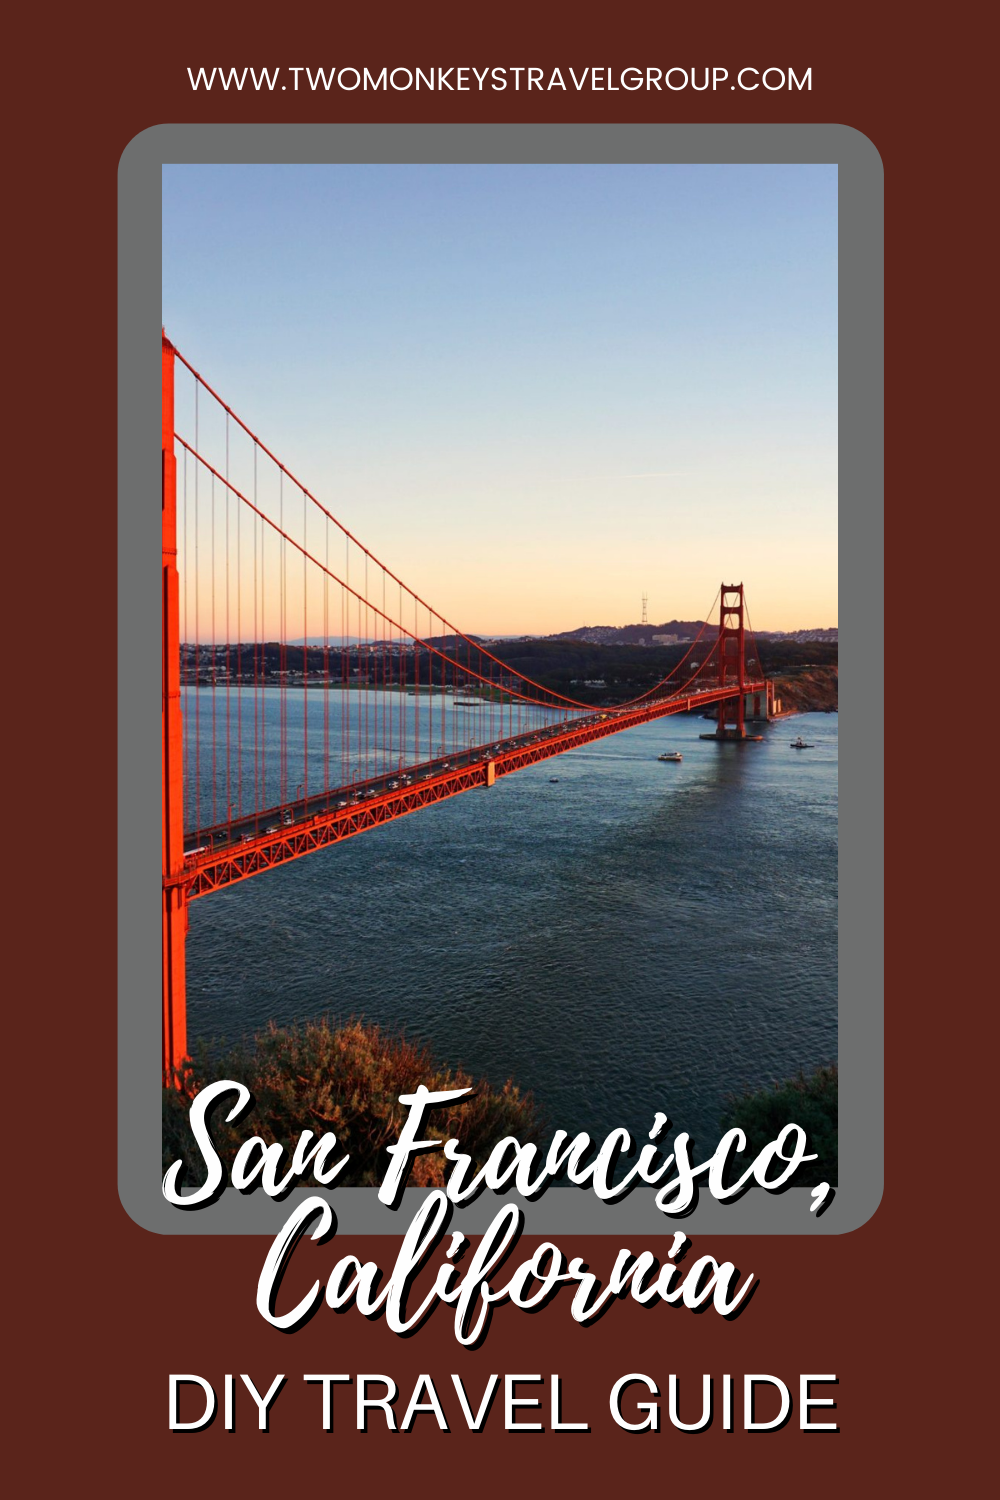 DIY Travel Guide to San Francisco, California [With Suggested Tours]